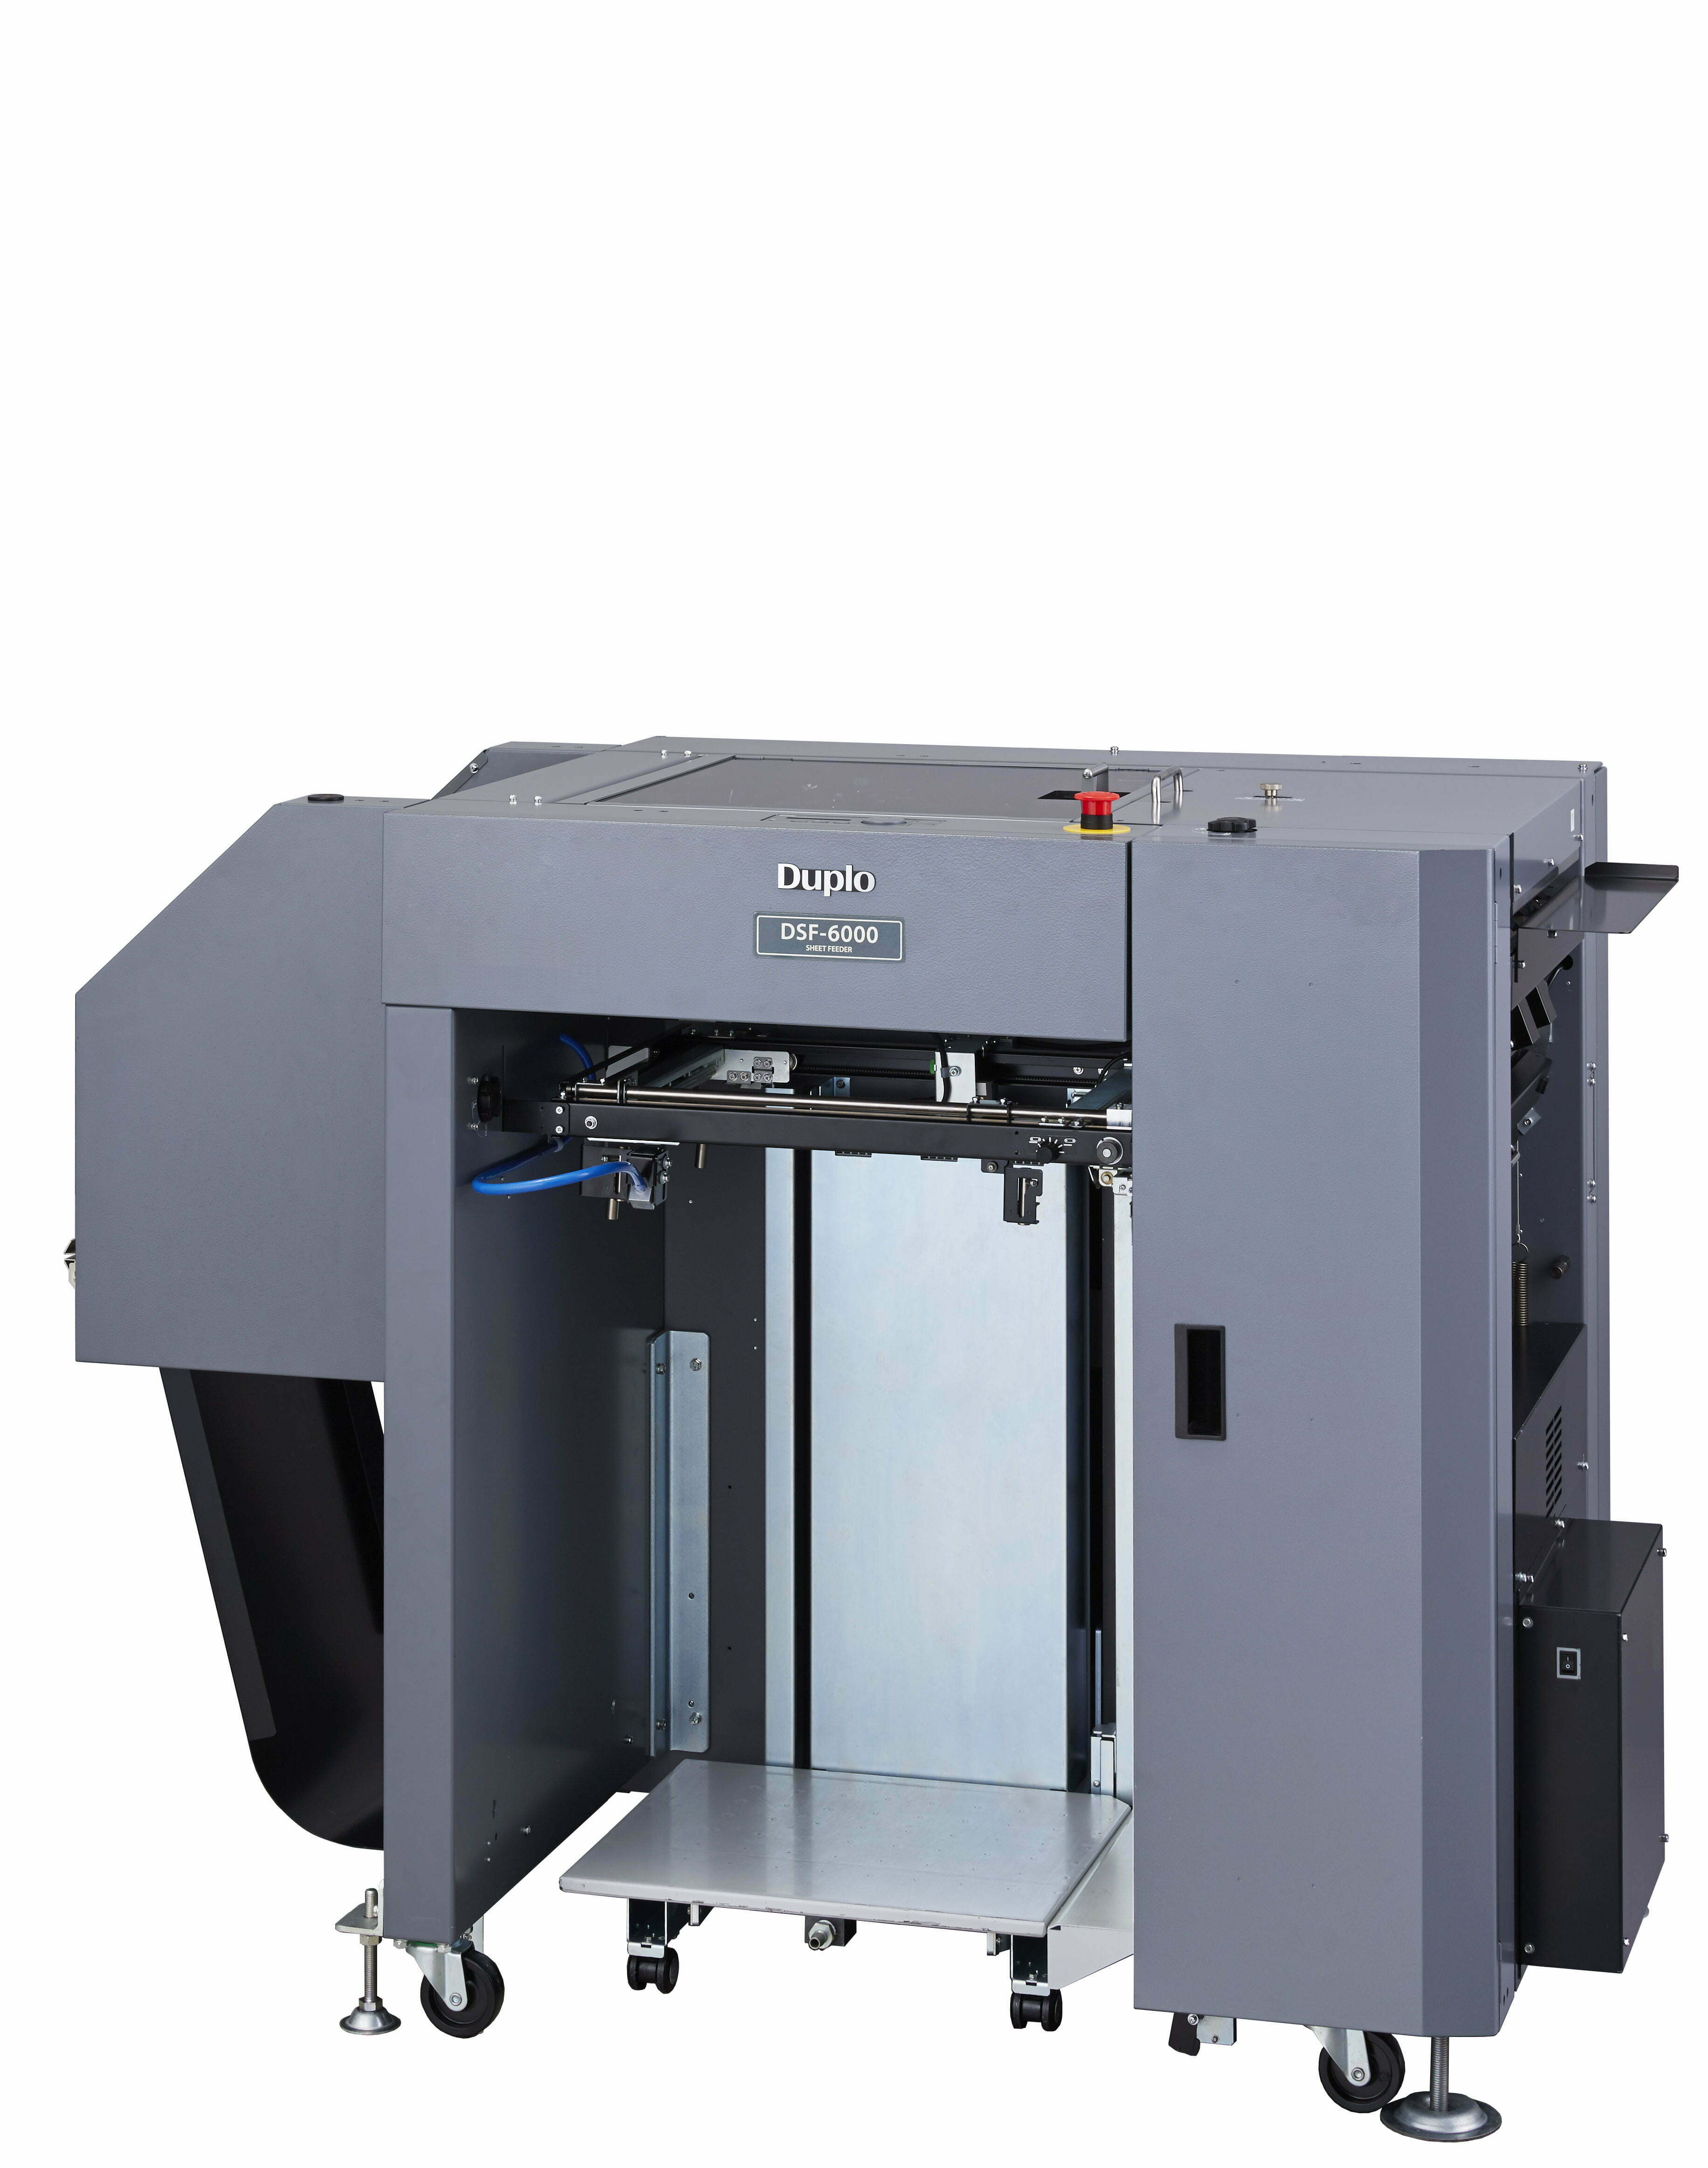 Duplo iSaddle 2 PRO Digital System DSF 6000